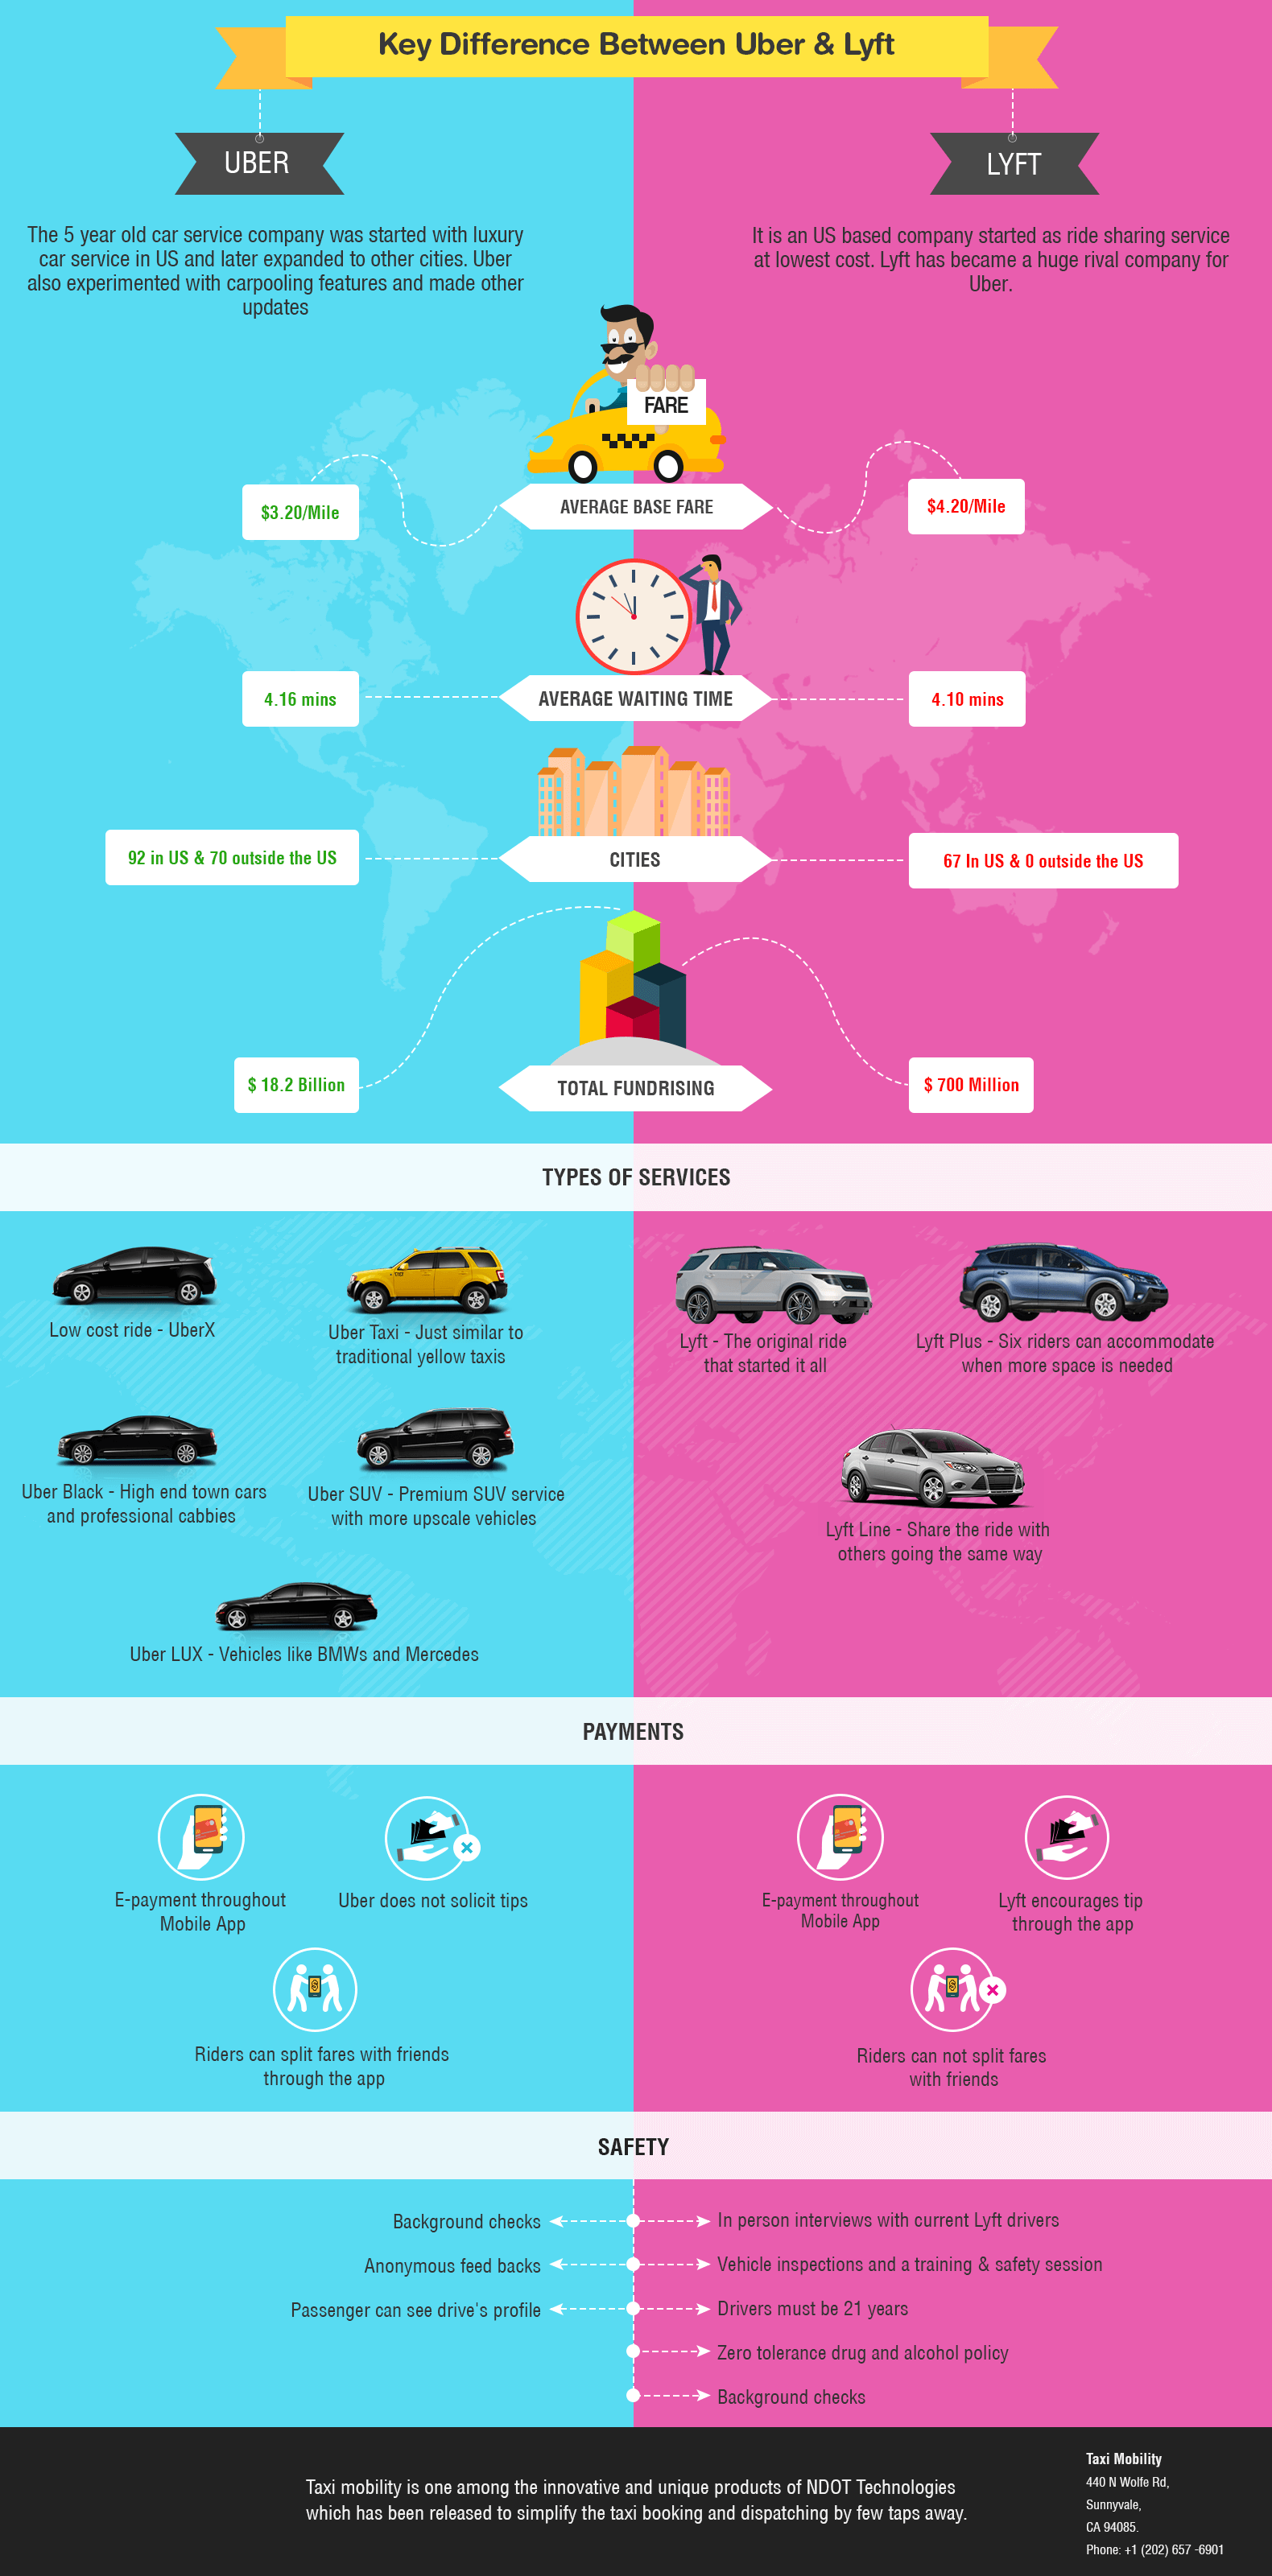 The Key Difference Between Uber and Lyft